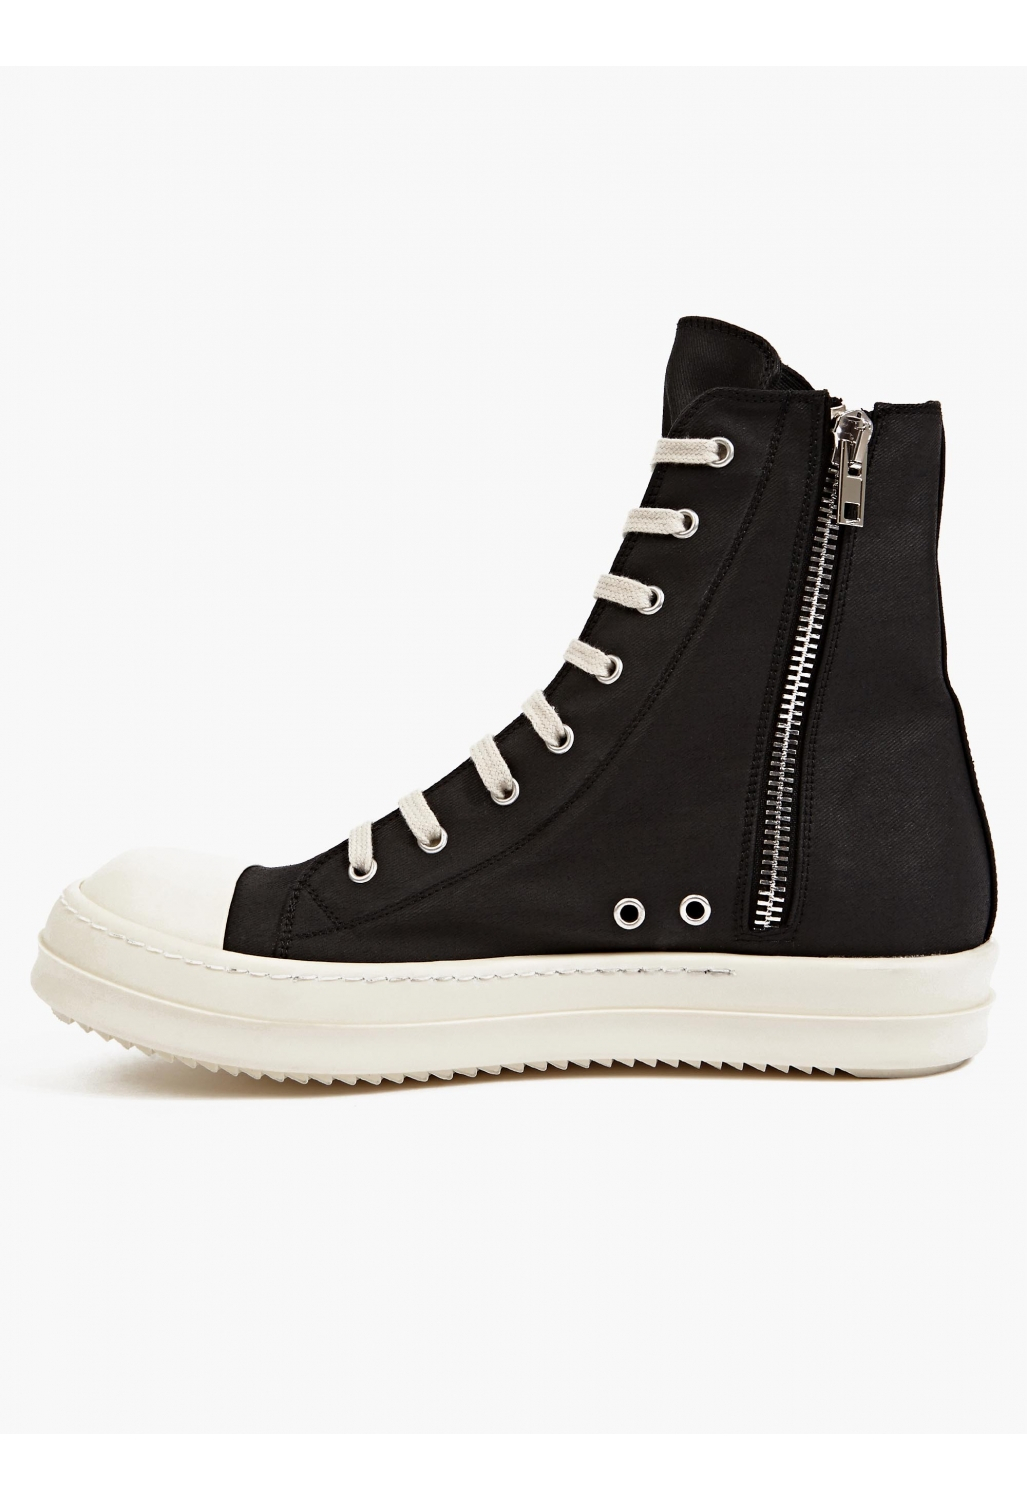 drkshdw by rick owens mens black canvas rms sneakers in black for men lyst. Black Bedroom Furniture Sets. Home Design Ideas